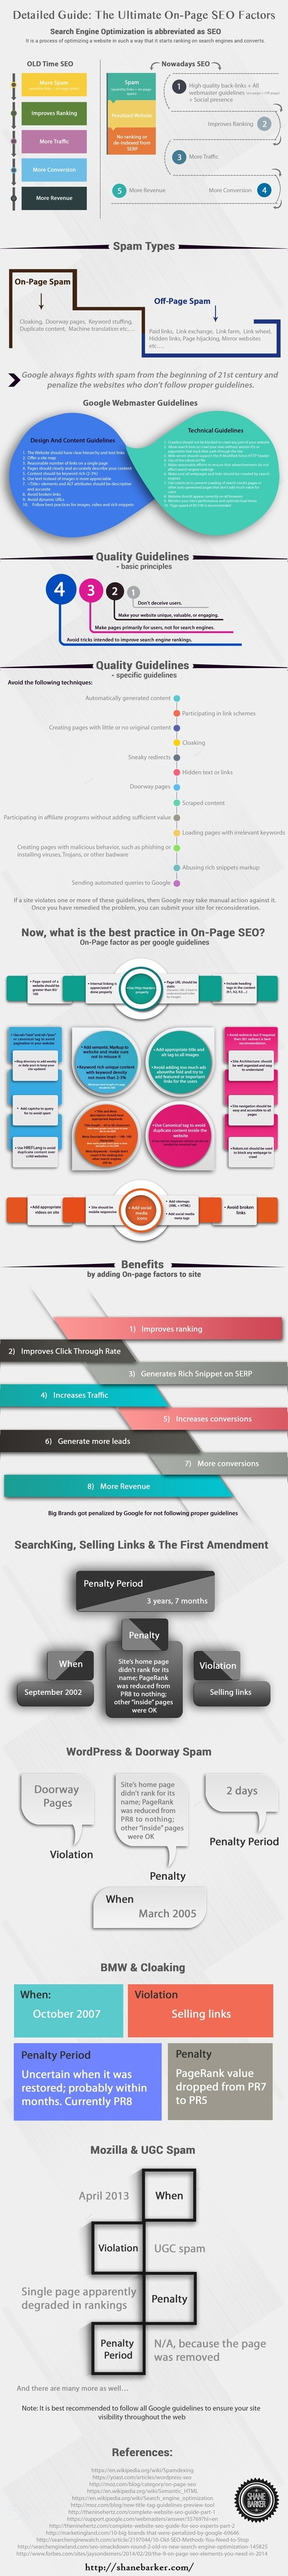 The ultimate On-Page SEO Factors [Infographic] | B2B Marketing & LinkedIn | Scoop.it